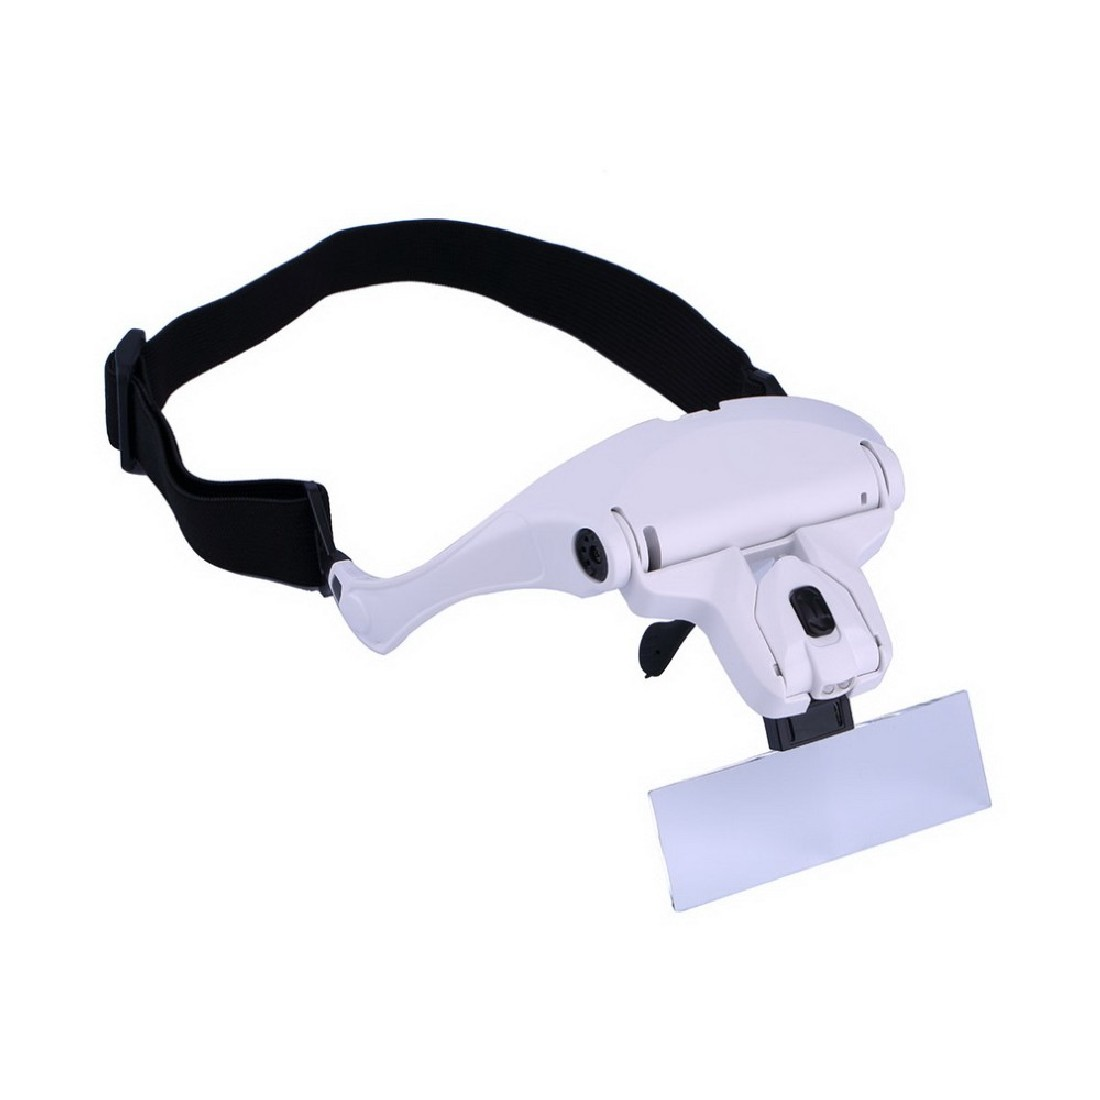 Top Originative 1.0X 1.5X 2.0X 2.5X 3.5X 5 Lens Adjustable Loupe Headband Magnifying Glass Magnifier with LED Magnifying Glasses